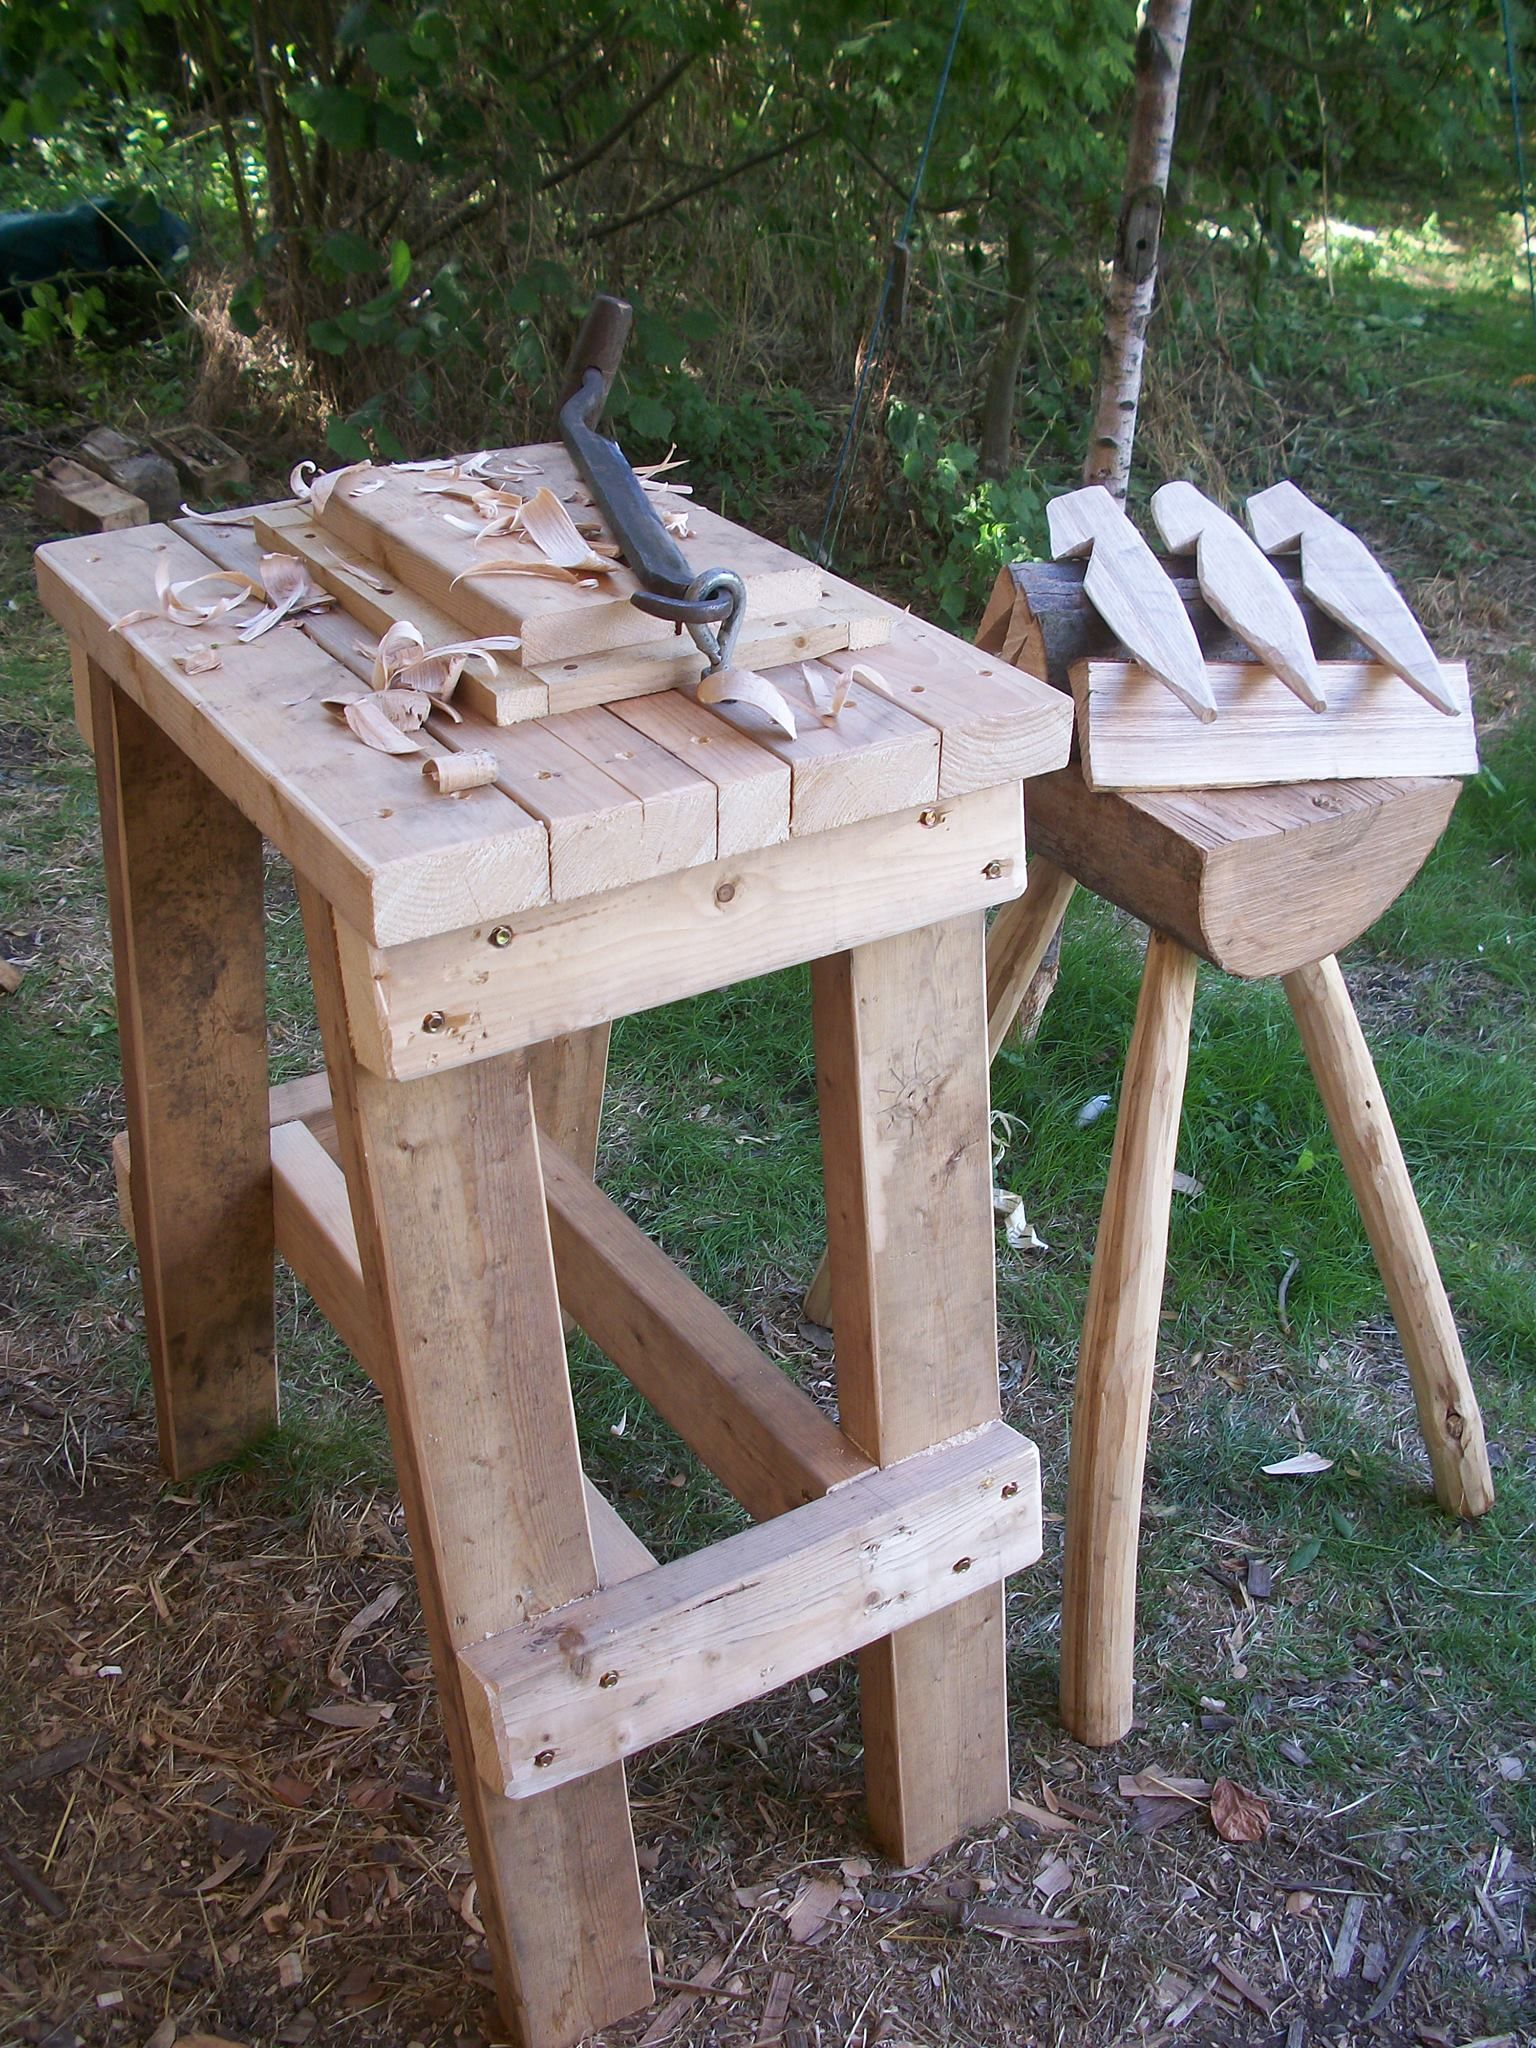 Woodworking Tool Bench Pin By Laurits Andersen On Carving In 2019 Wood Carving